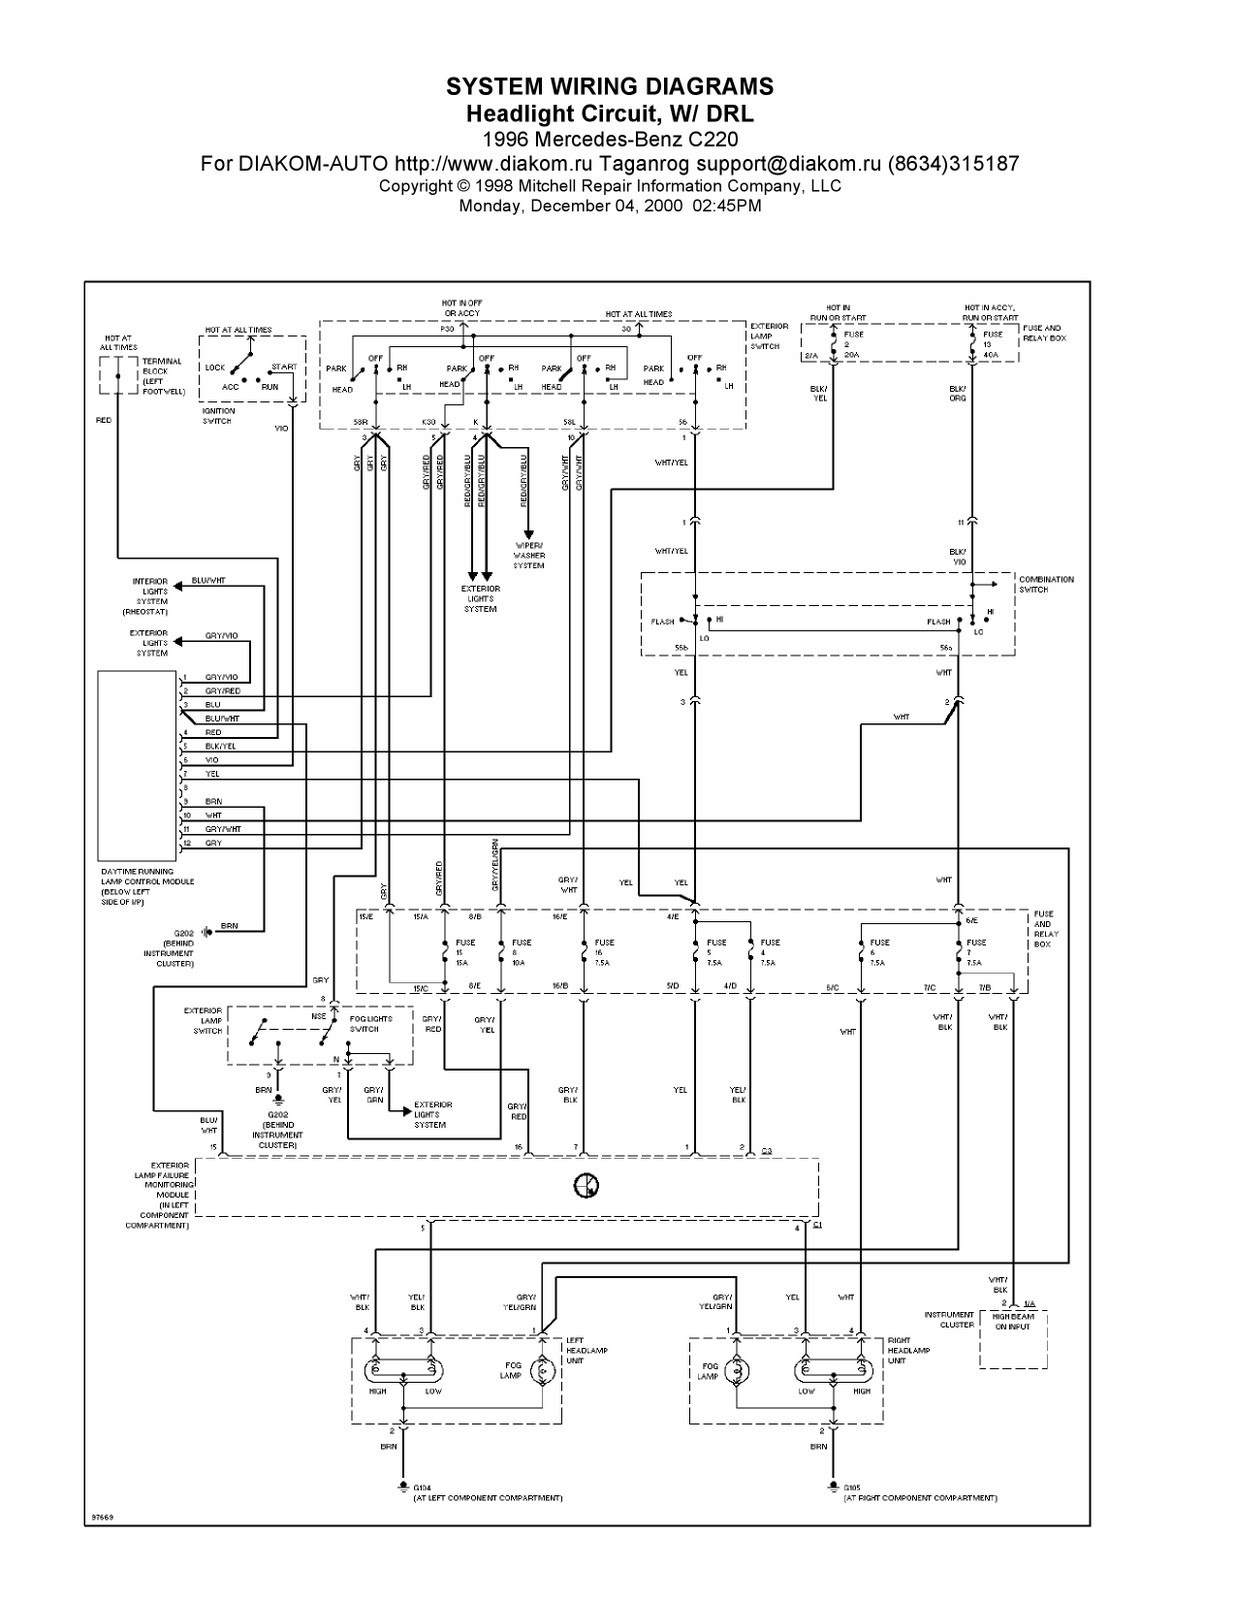 Wiring Diagram Mercedes W202 | Online Wiring Diagram